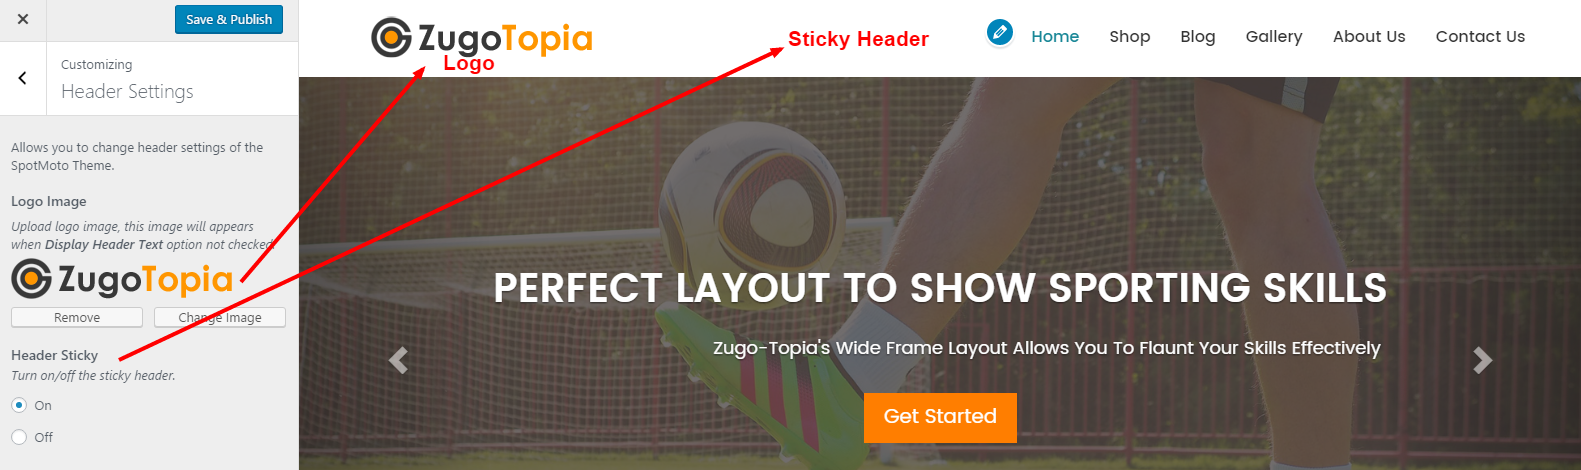 ZugoTopia WordPress Theme Documentation